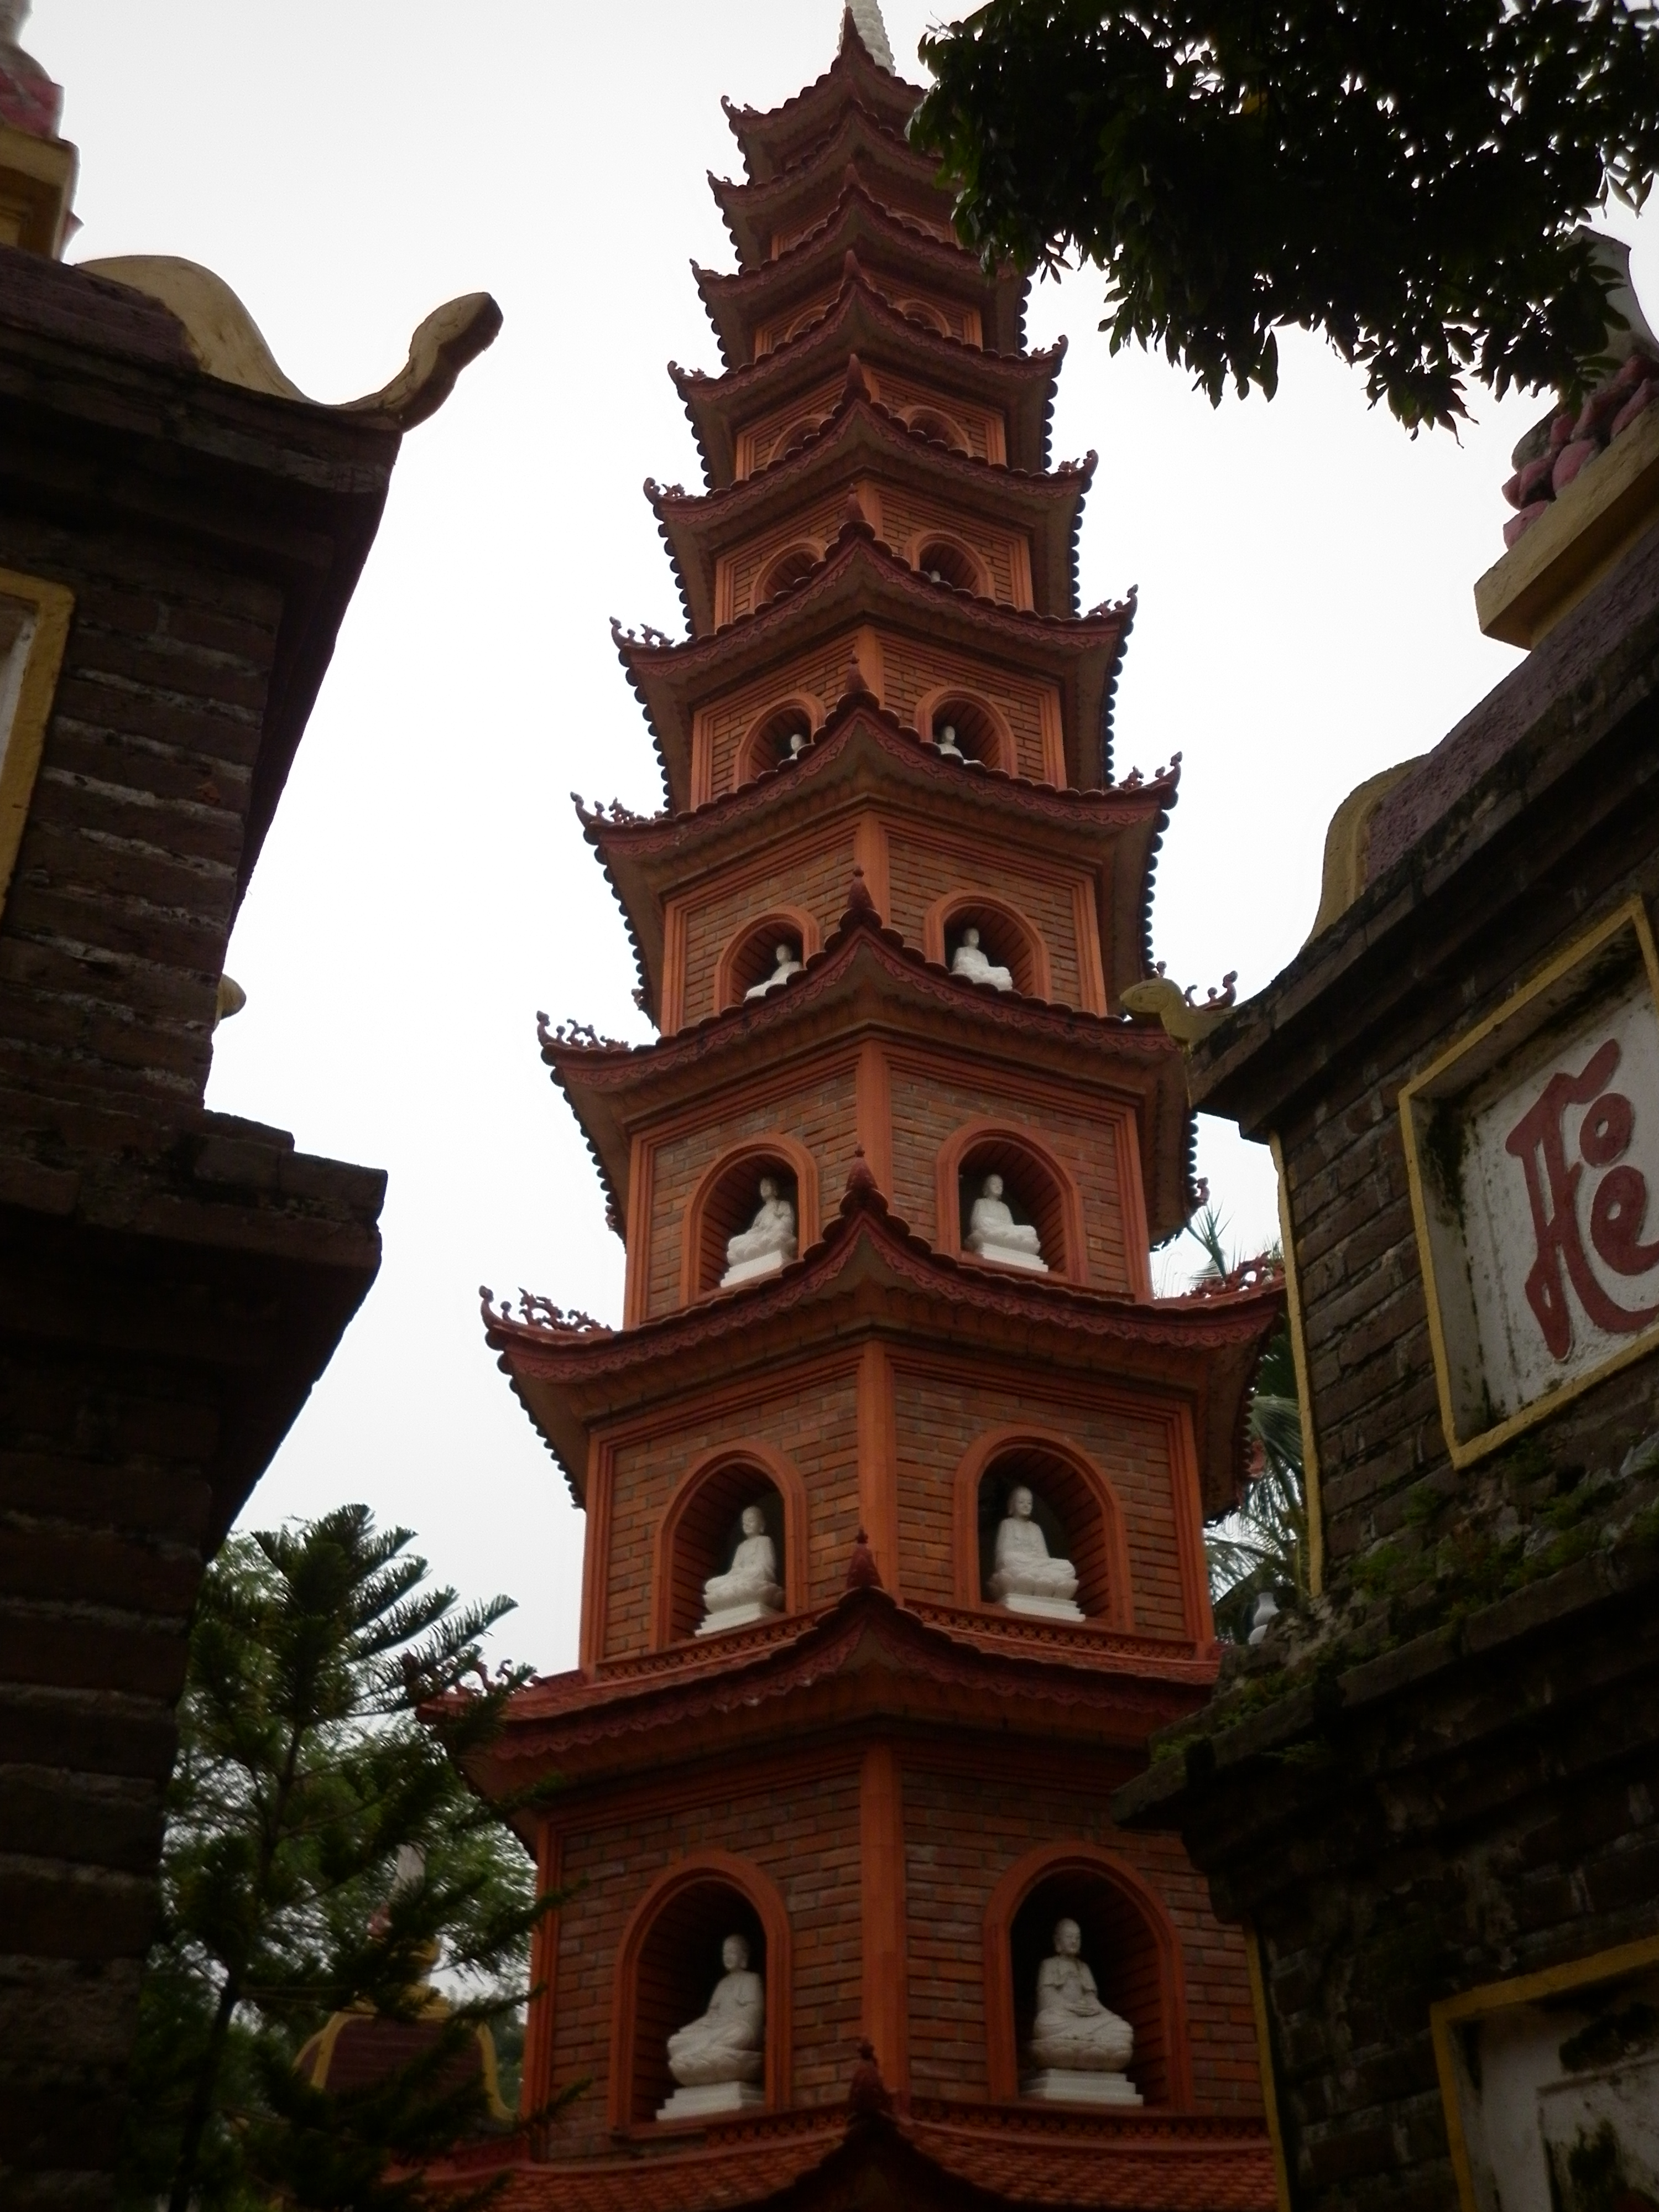 Tran Quoc Pagoda, the oldest pagoda in Hanoi